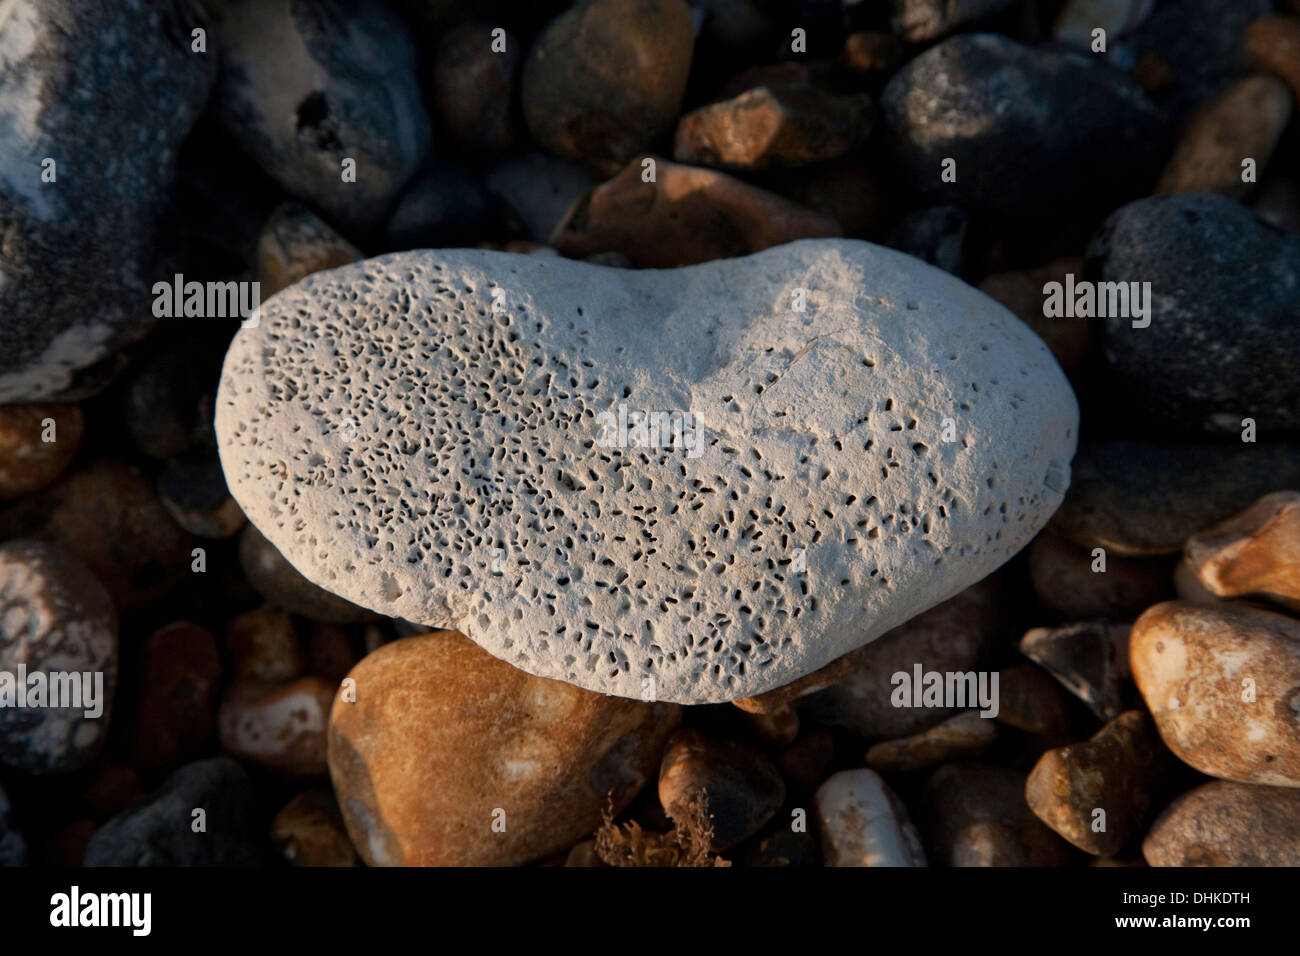 small bivalve holes in chalk stone - Stock Image